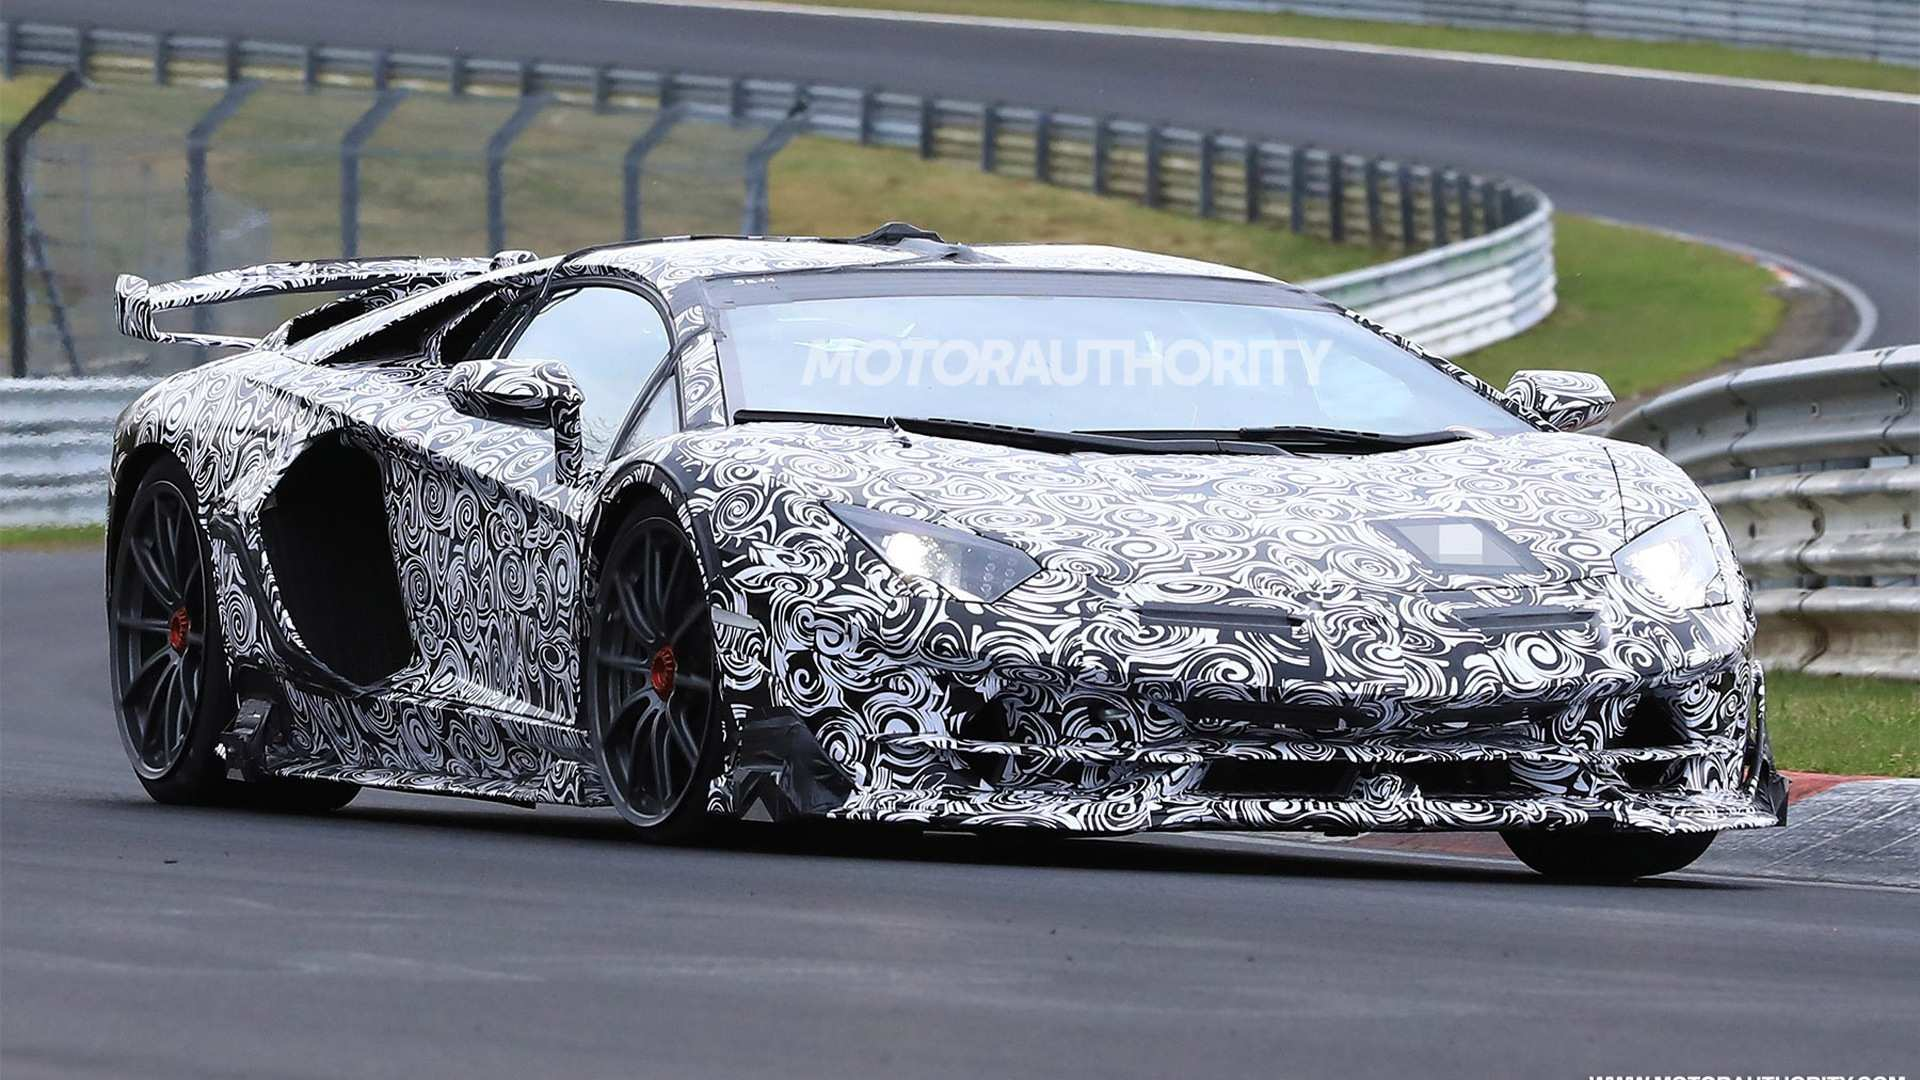 51 Best 2020 Lamborghini Aventador Price Redesign And Review